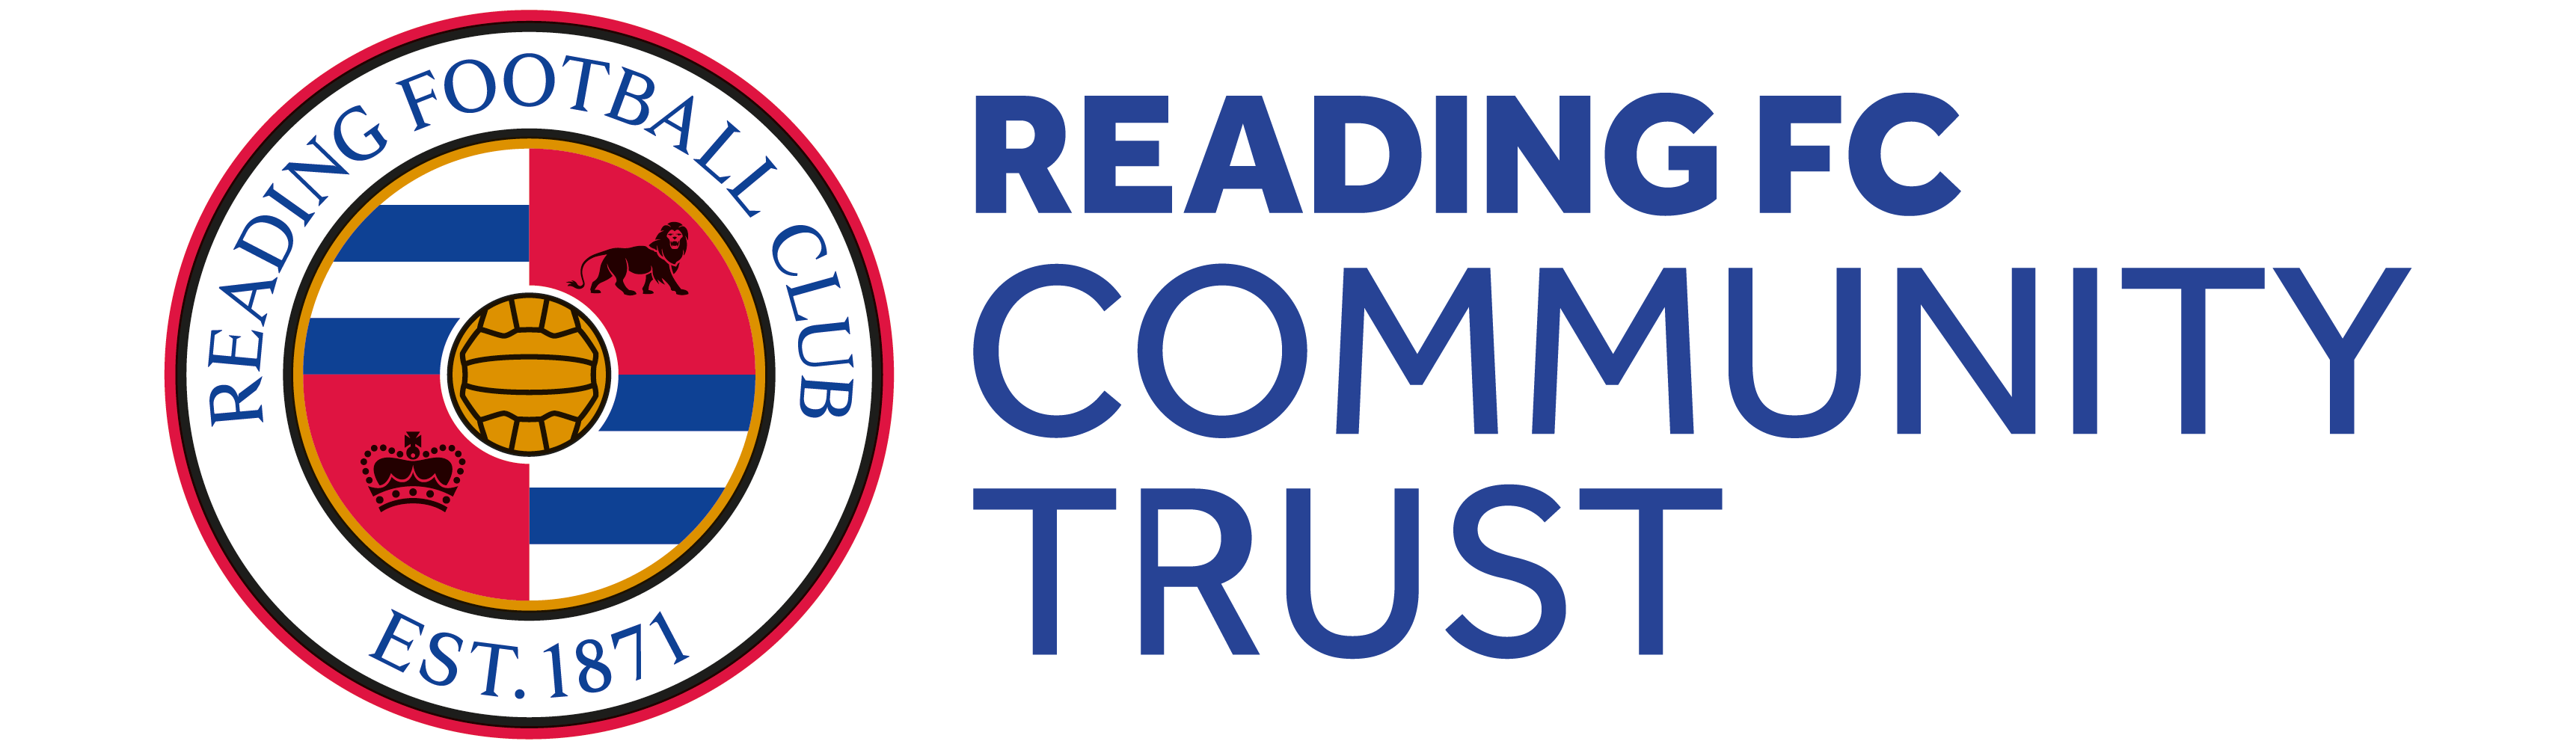 Reading FC Community Trust Primary Resource Hub